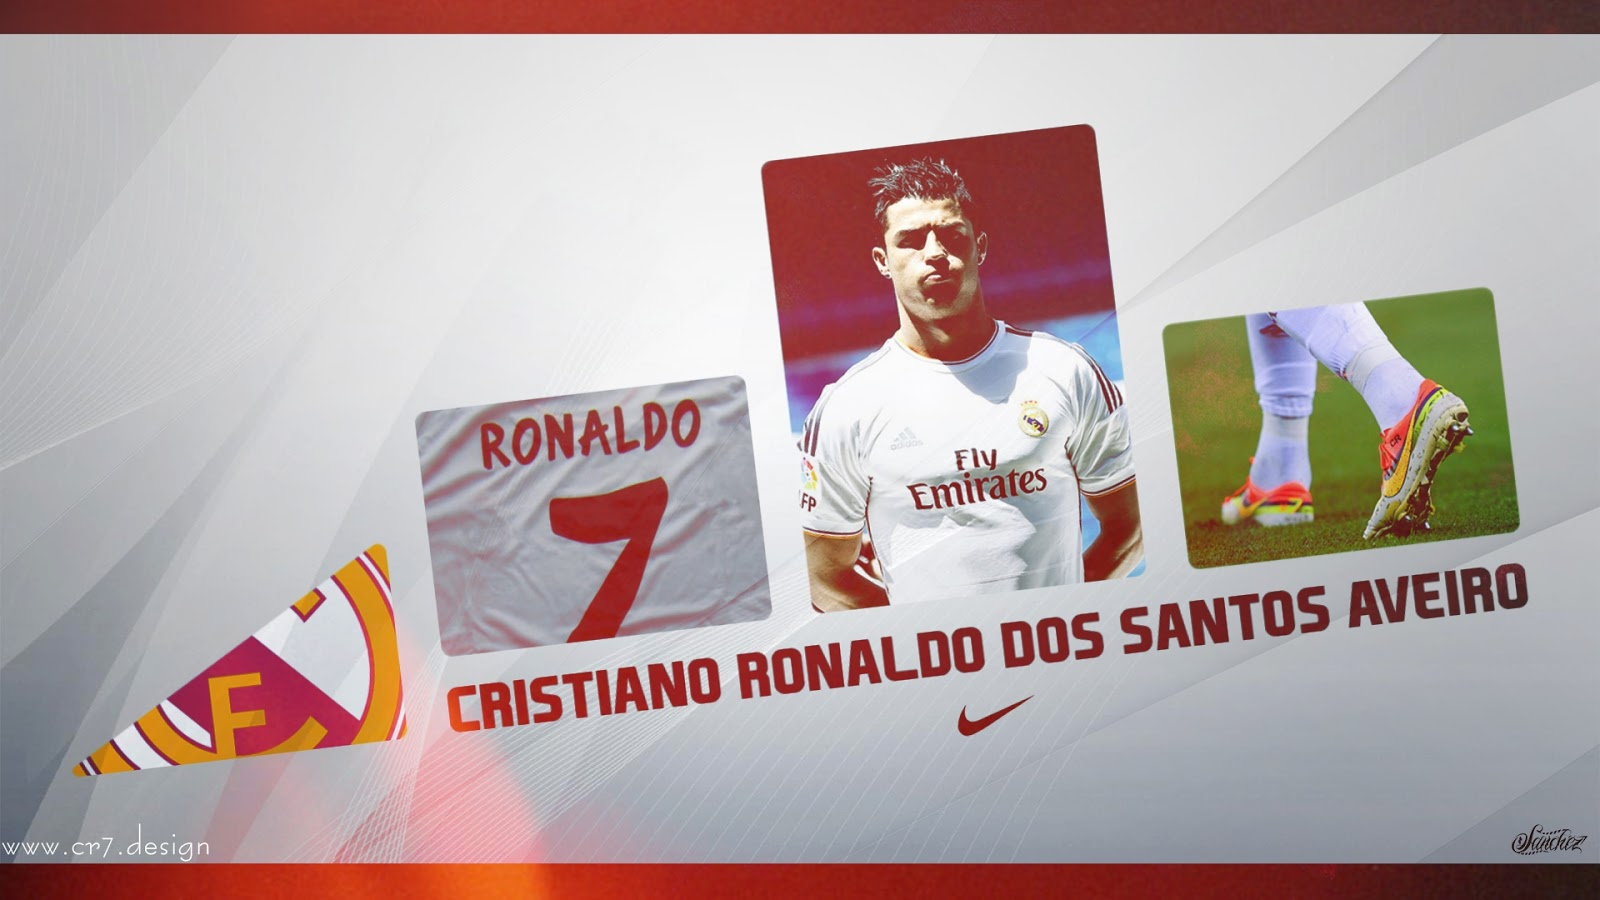 ciristiano-ronaldo-wallpaper-design-27